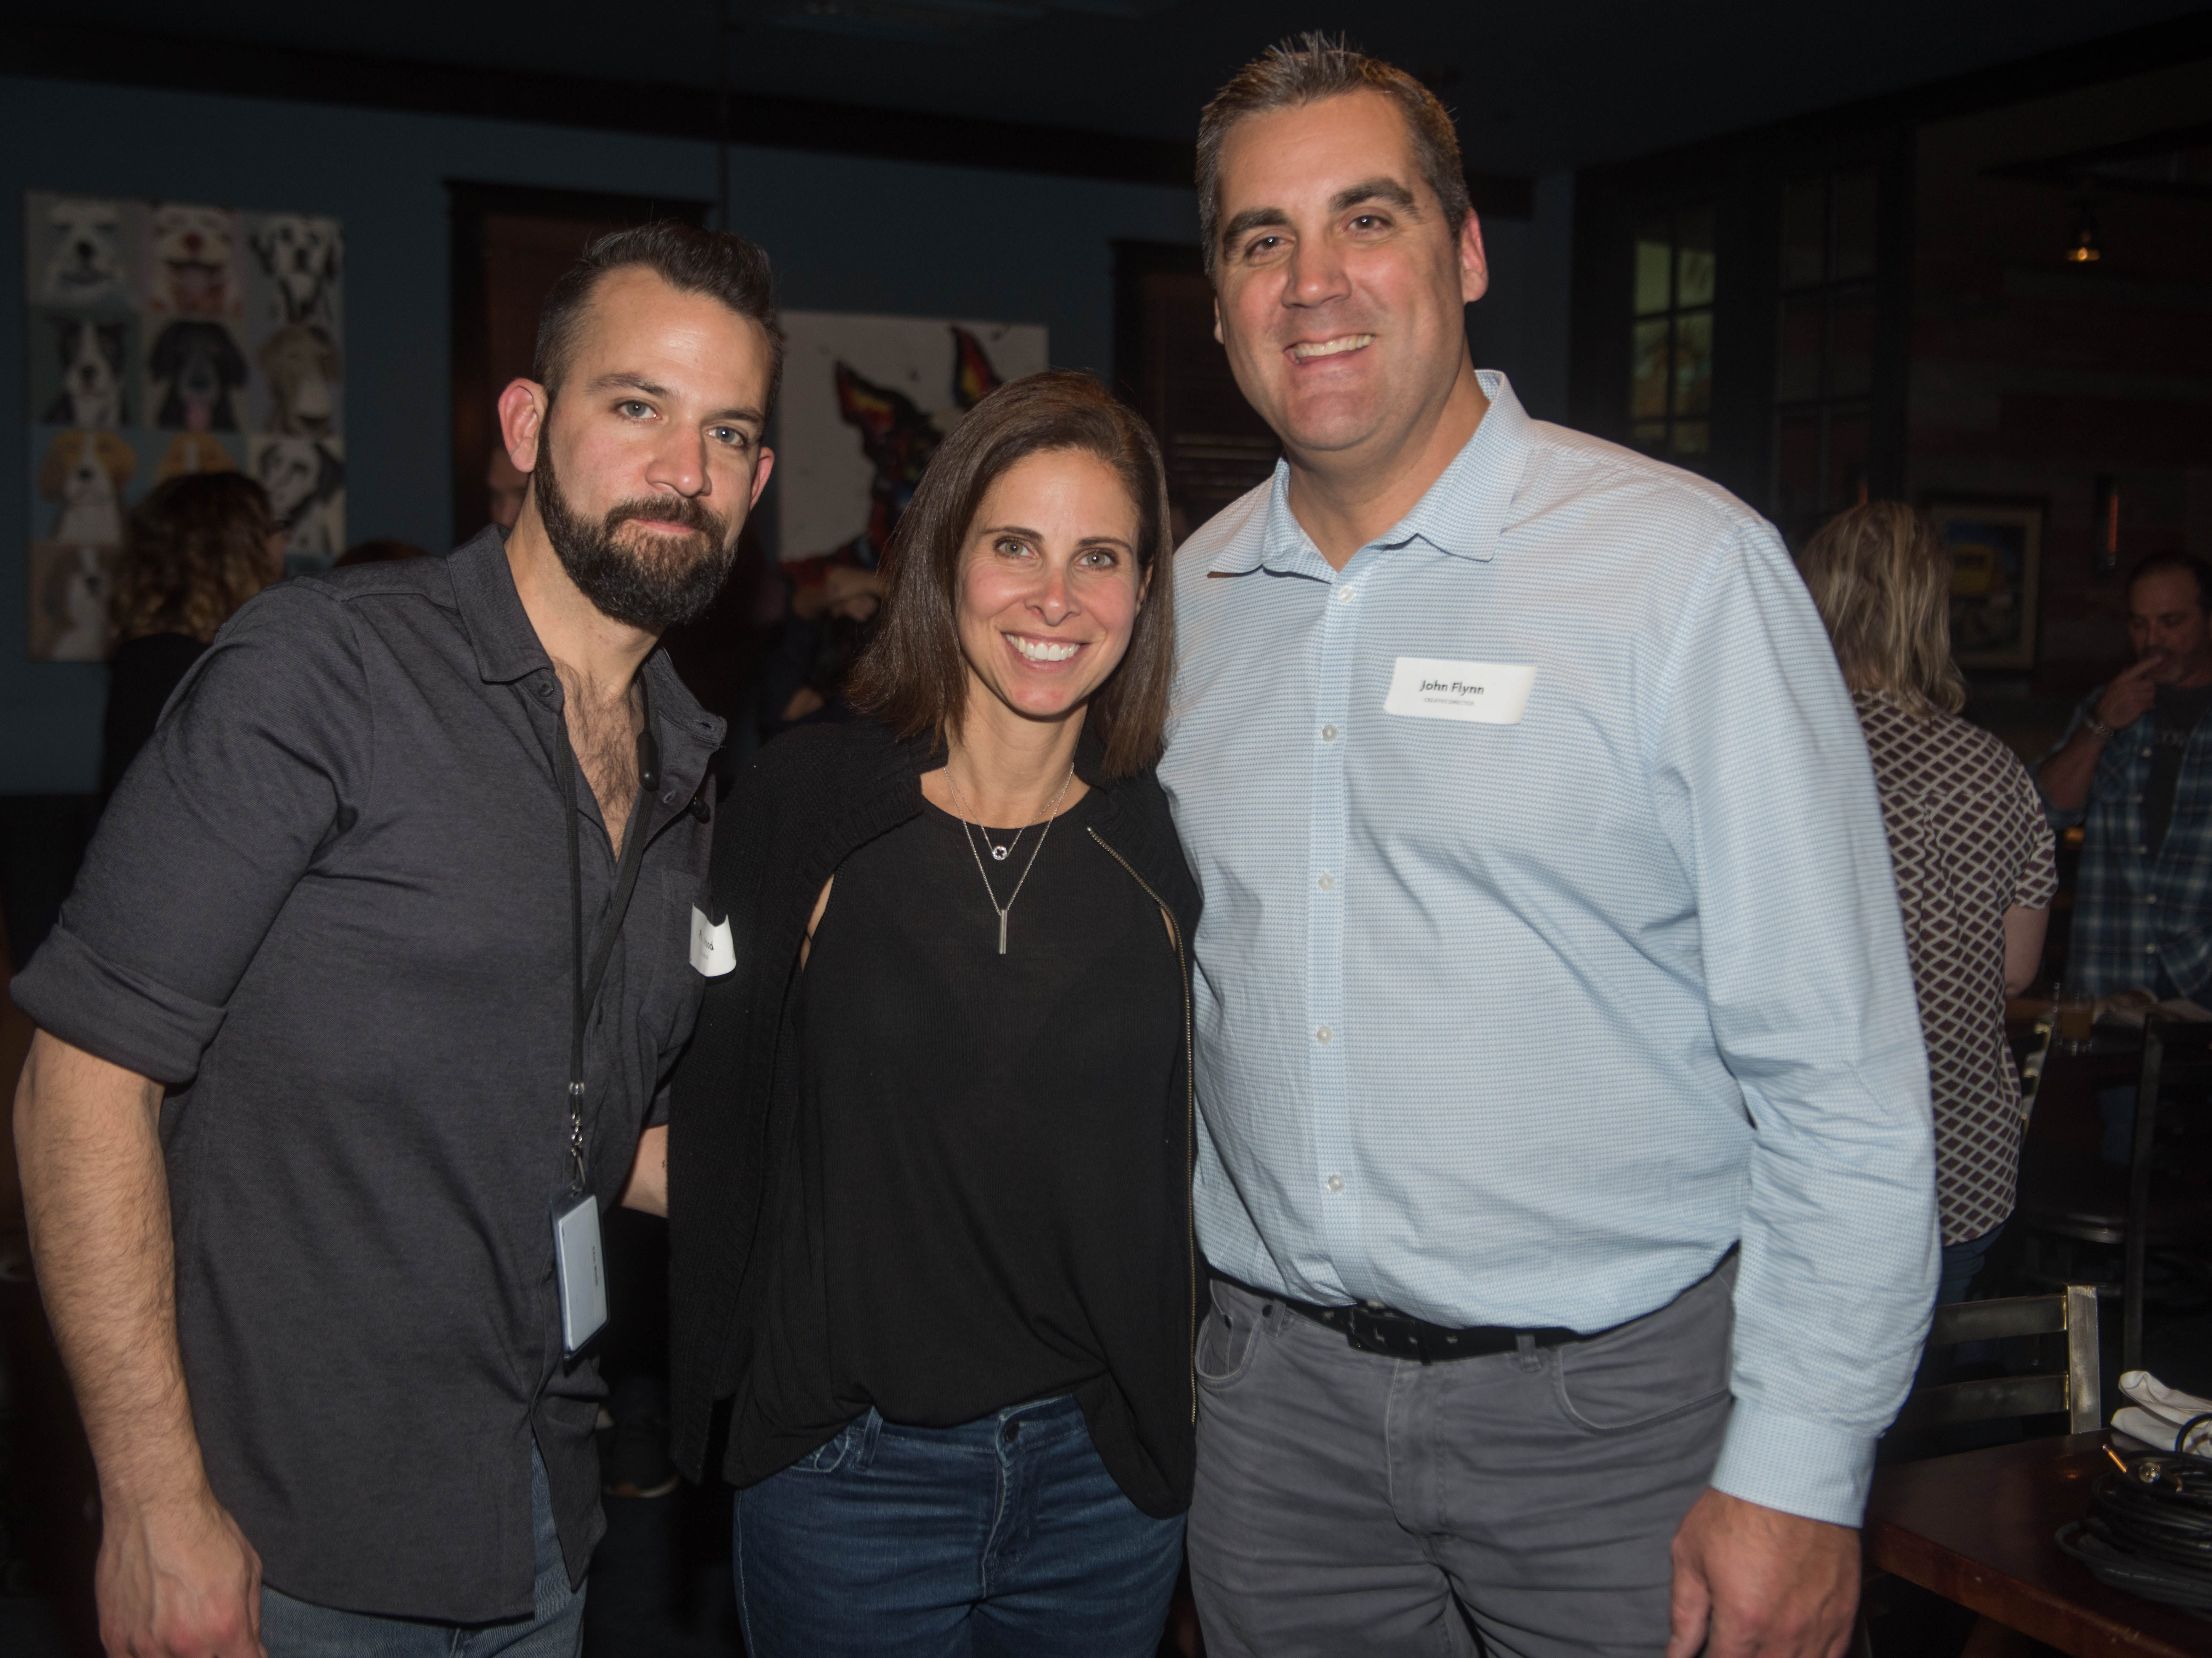 Paul Wood, T.H. Waldman and John Flynn. (201) Magazine and NorthJersey.com held Taste Test Tuesday at he Dog and Cask in Rochelle Park with this month's cover model, Lauran Tuck and former cover model and former NY Giant Justin Tuck. 11/13/2018